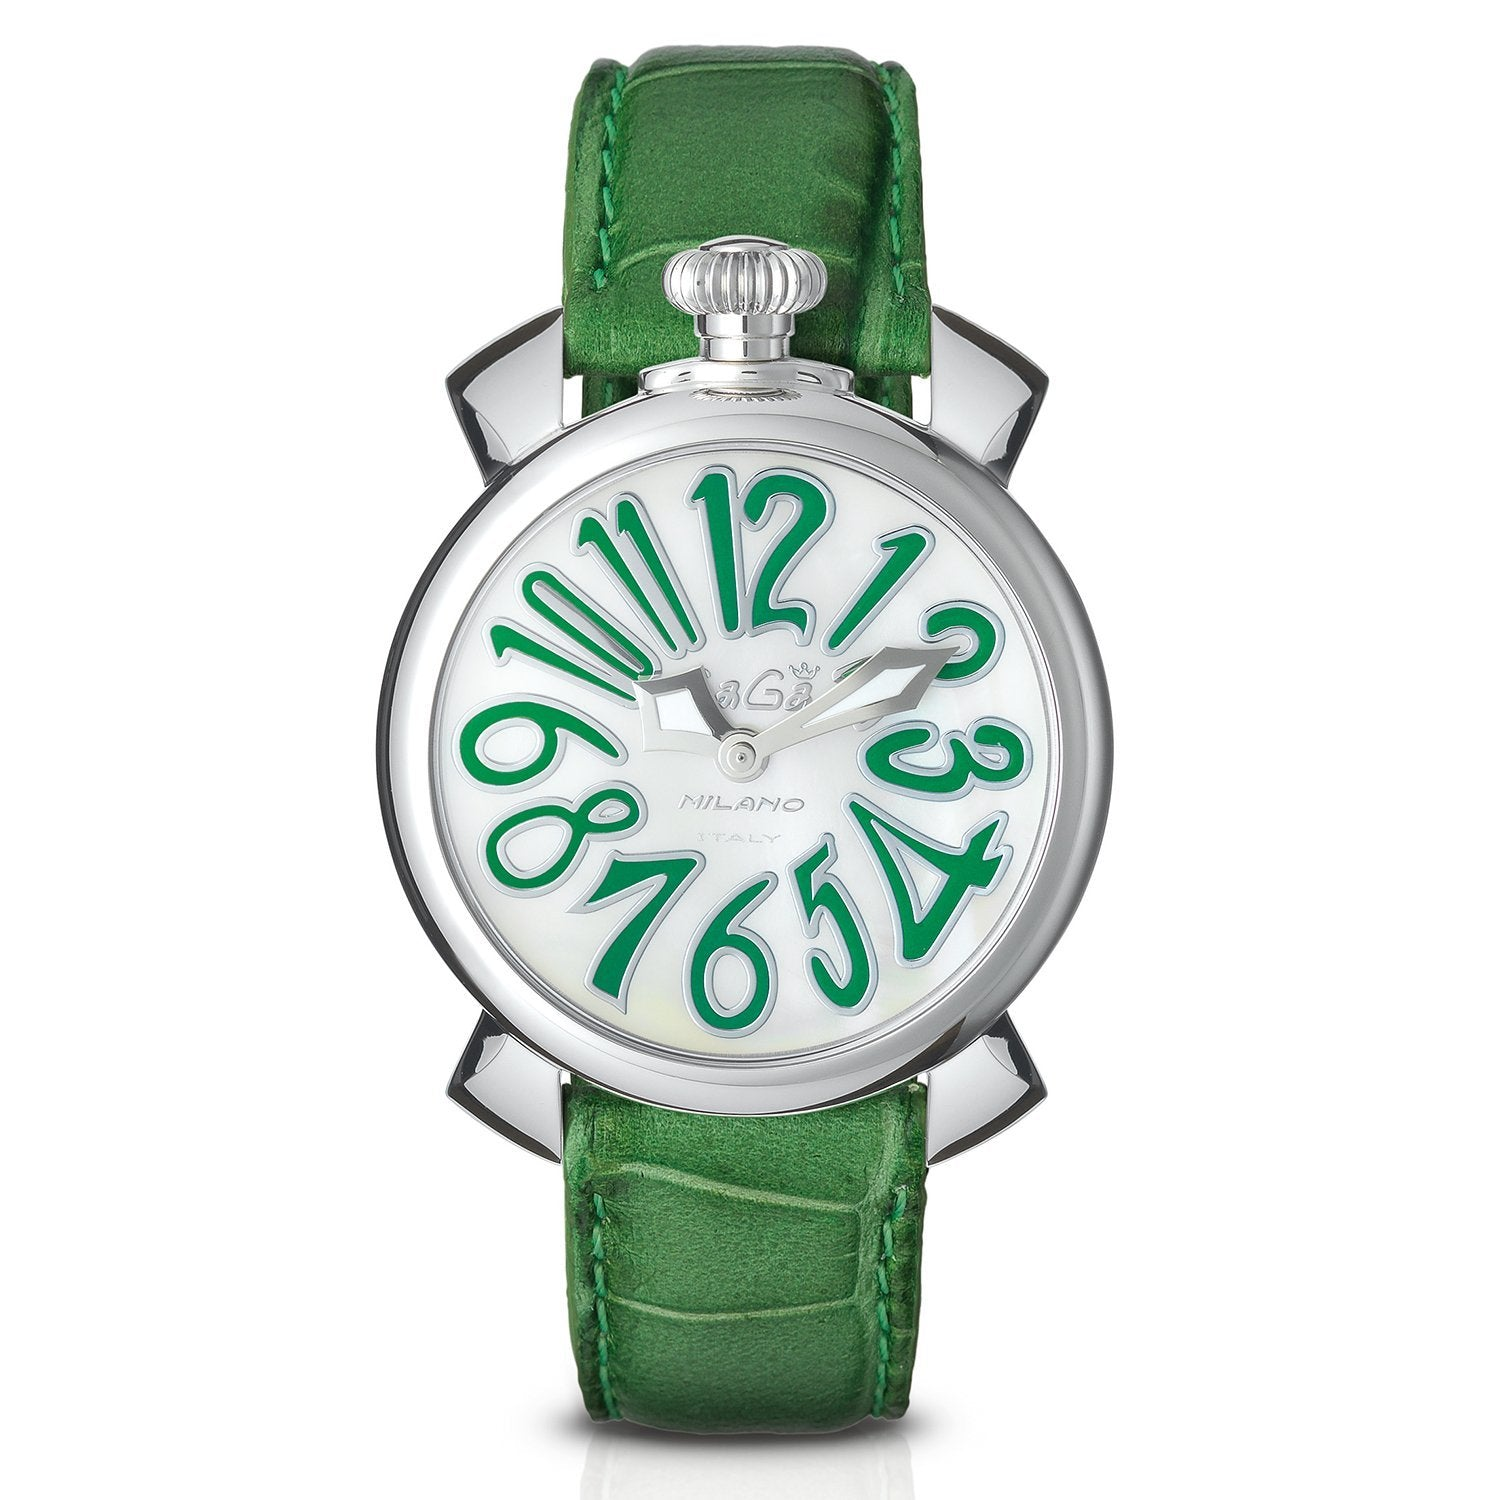 GaGà Milano Manuale 40MM Green - Watches & Crystals